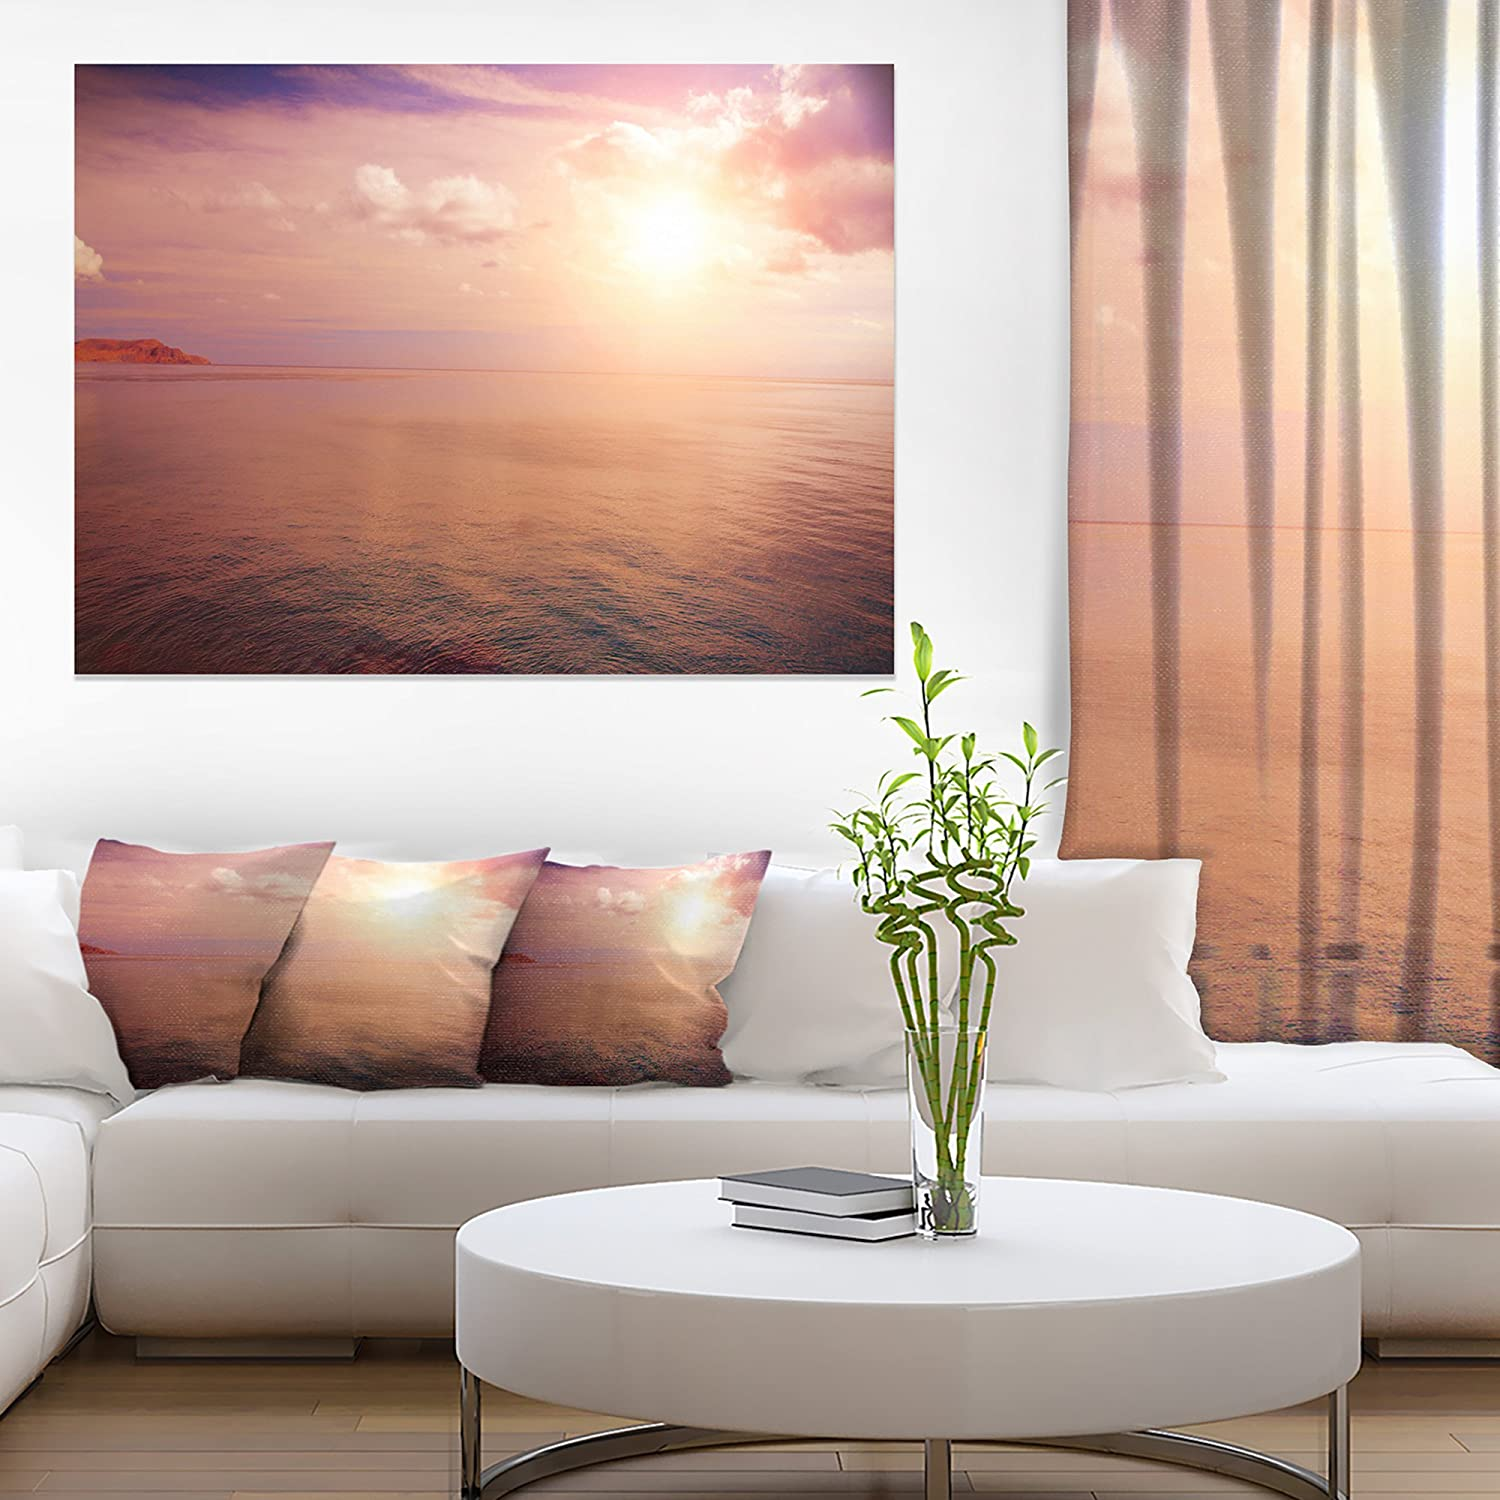 Design Art Pink Sky Over Dark Beach At Sunset Large Seashore Canvas Print 20x12 Red Posters Prints